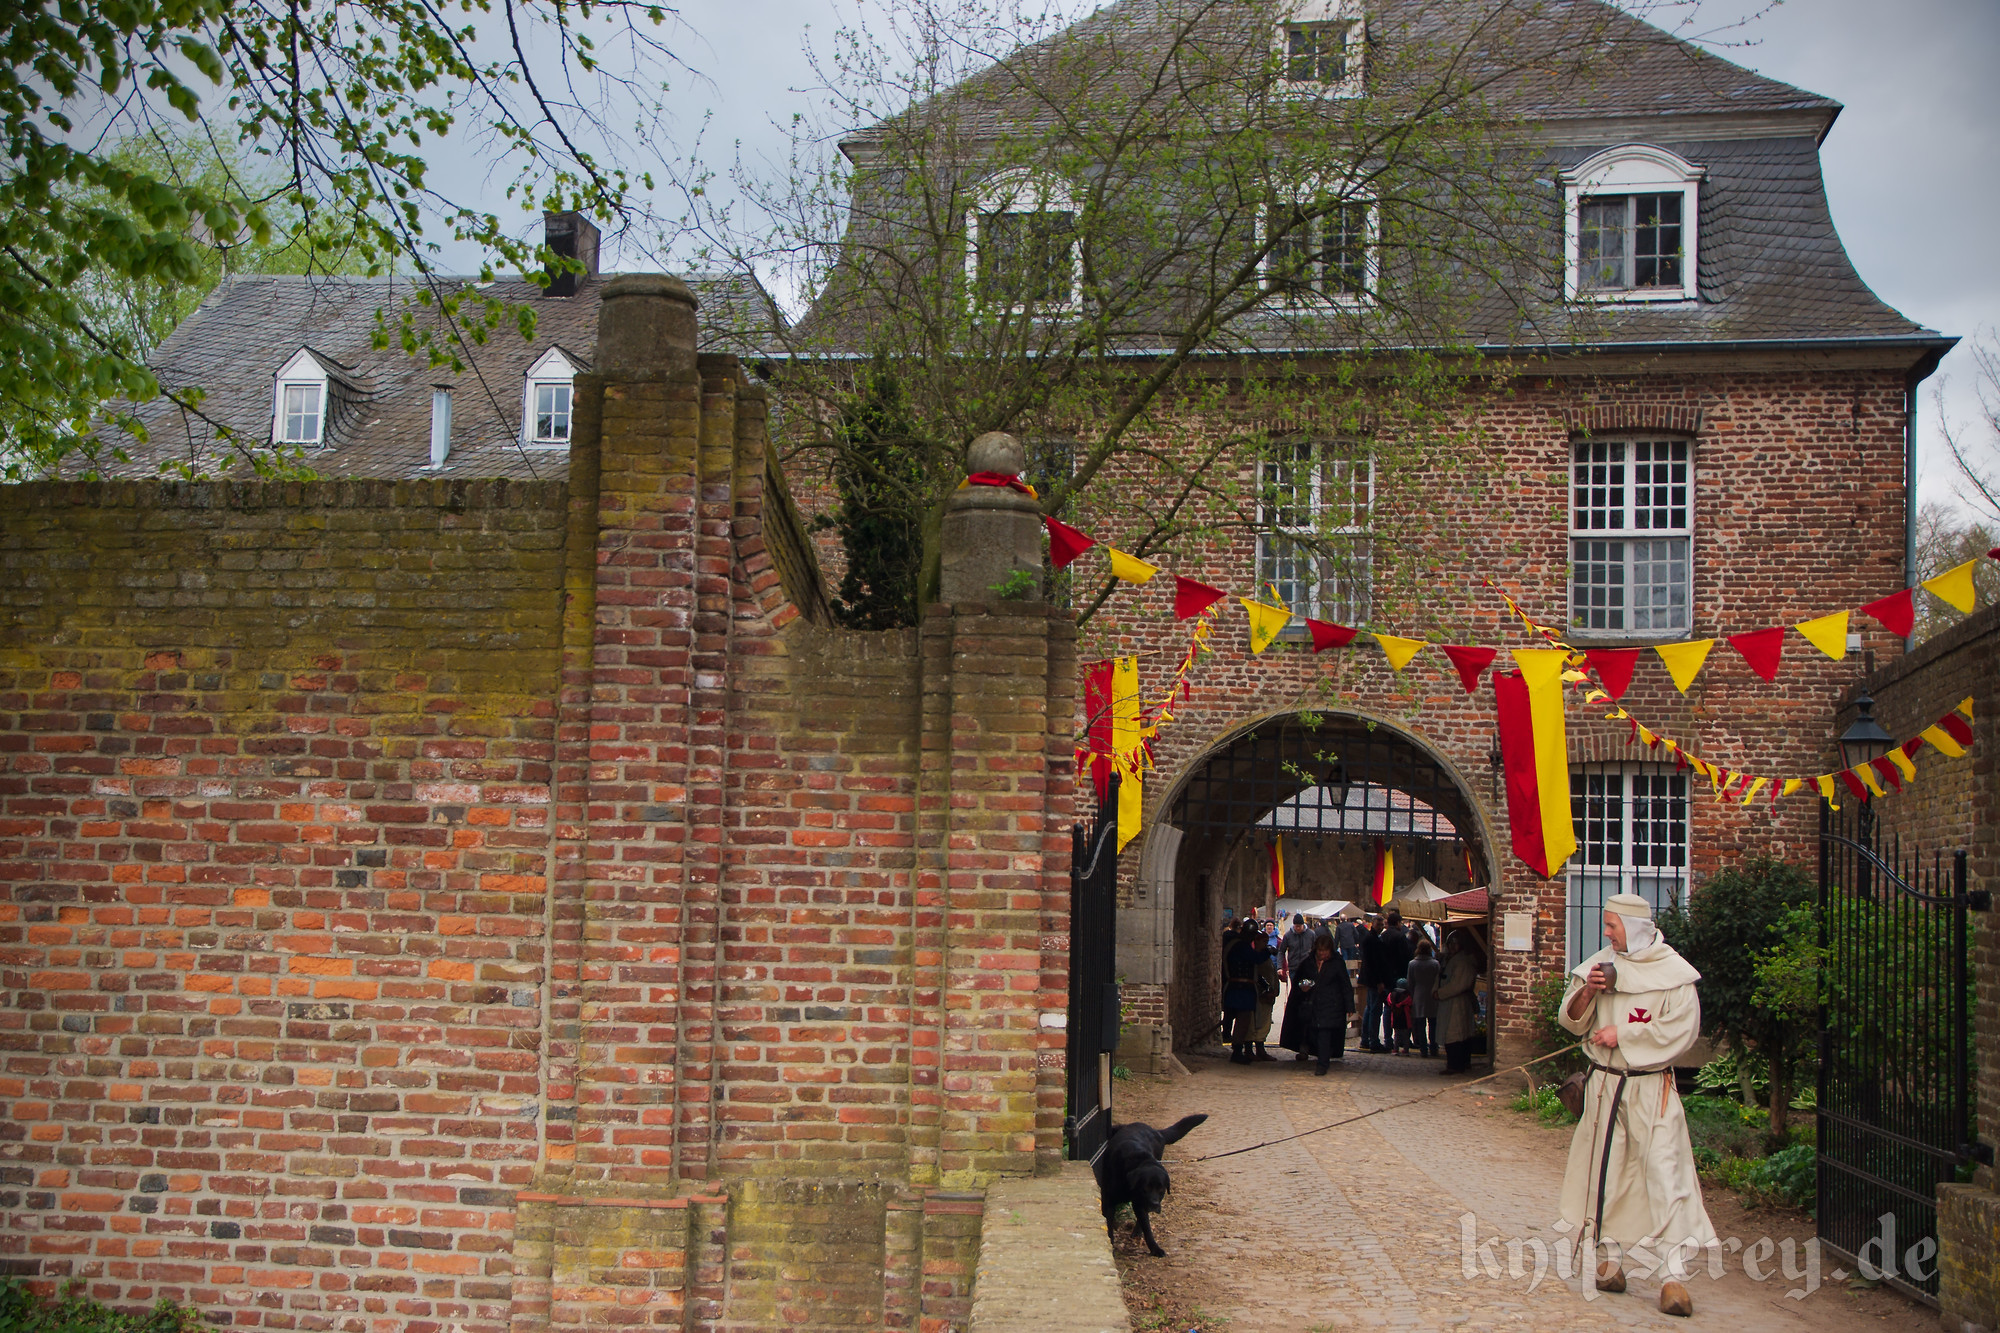 2017 04 15 Easter Medieval Market At The Graefenthal Abbey In Goch